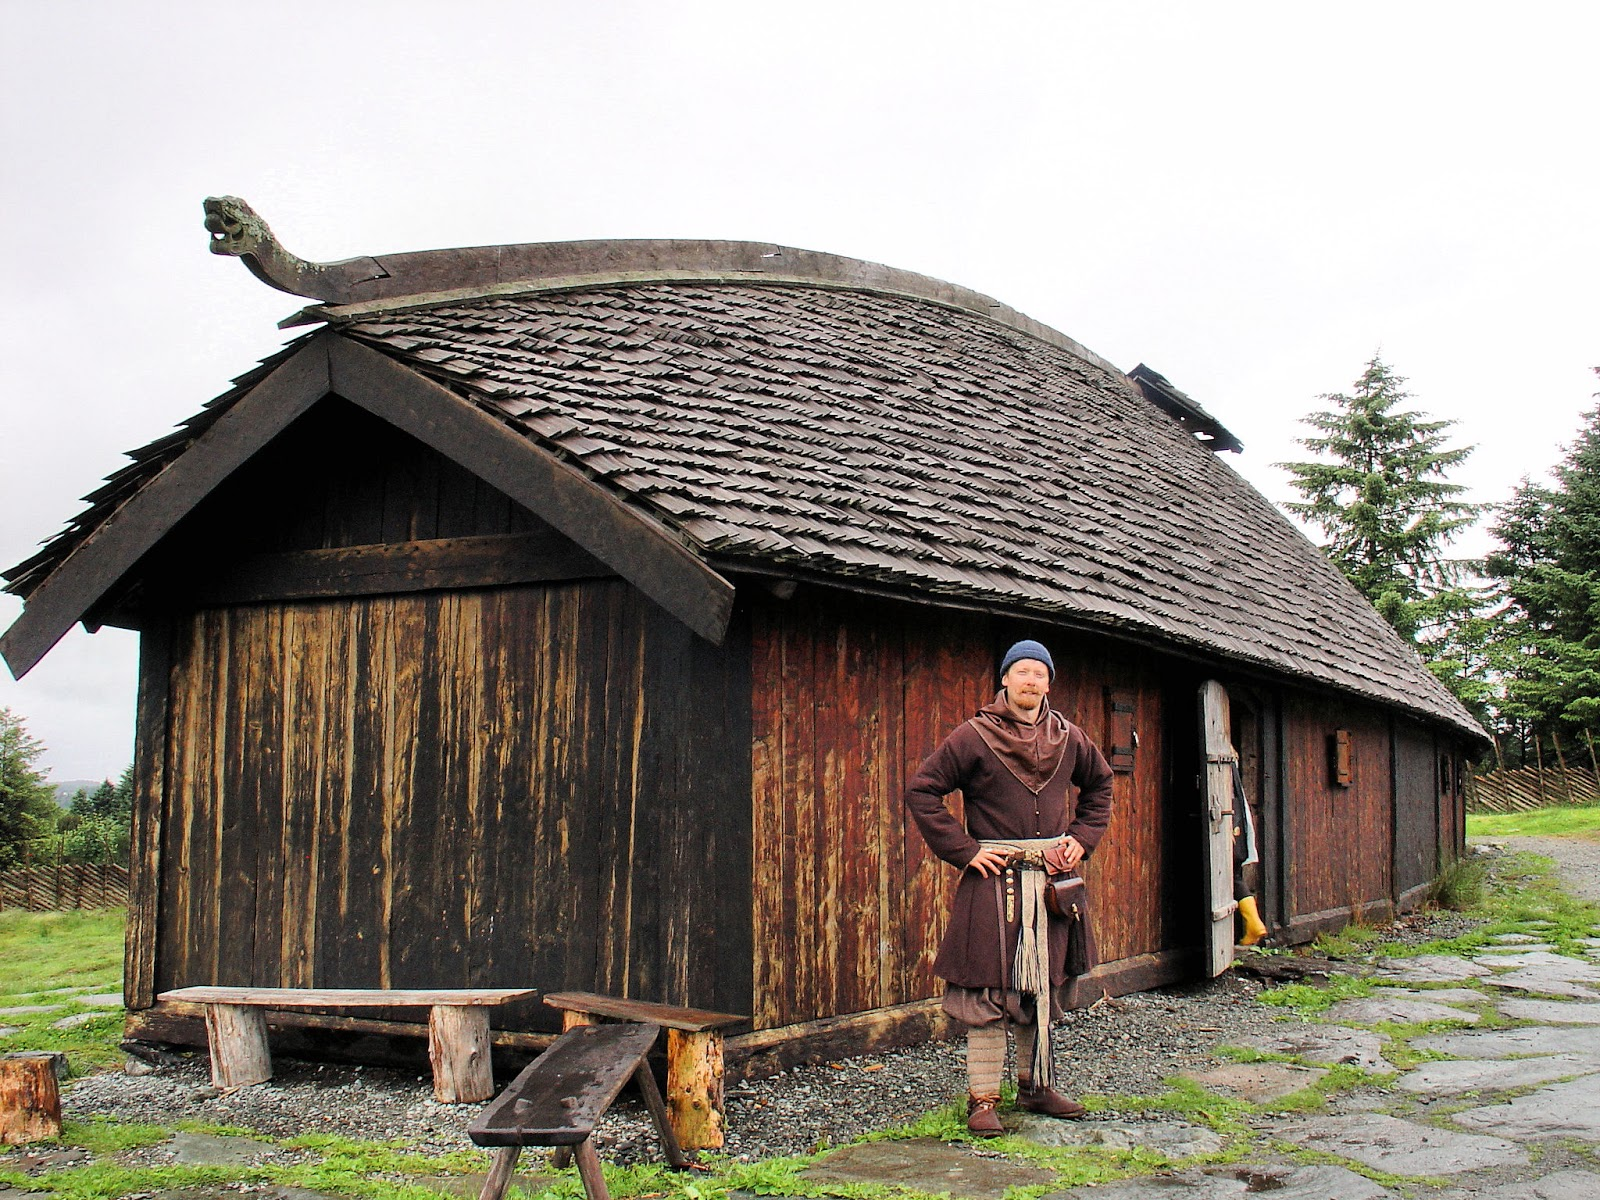 Our Harald once again but this time standing in front of a Viking longhouse replica.